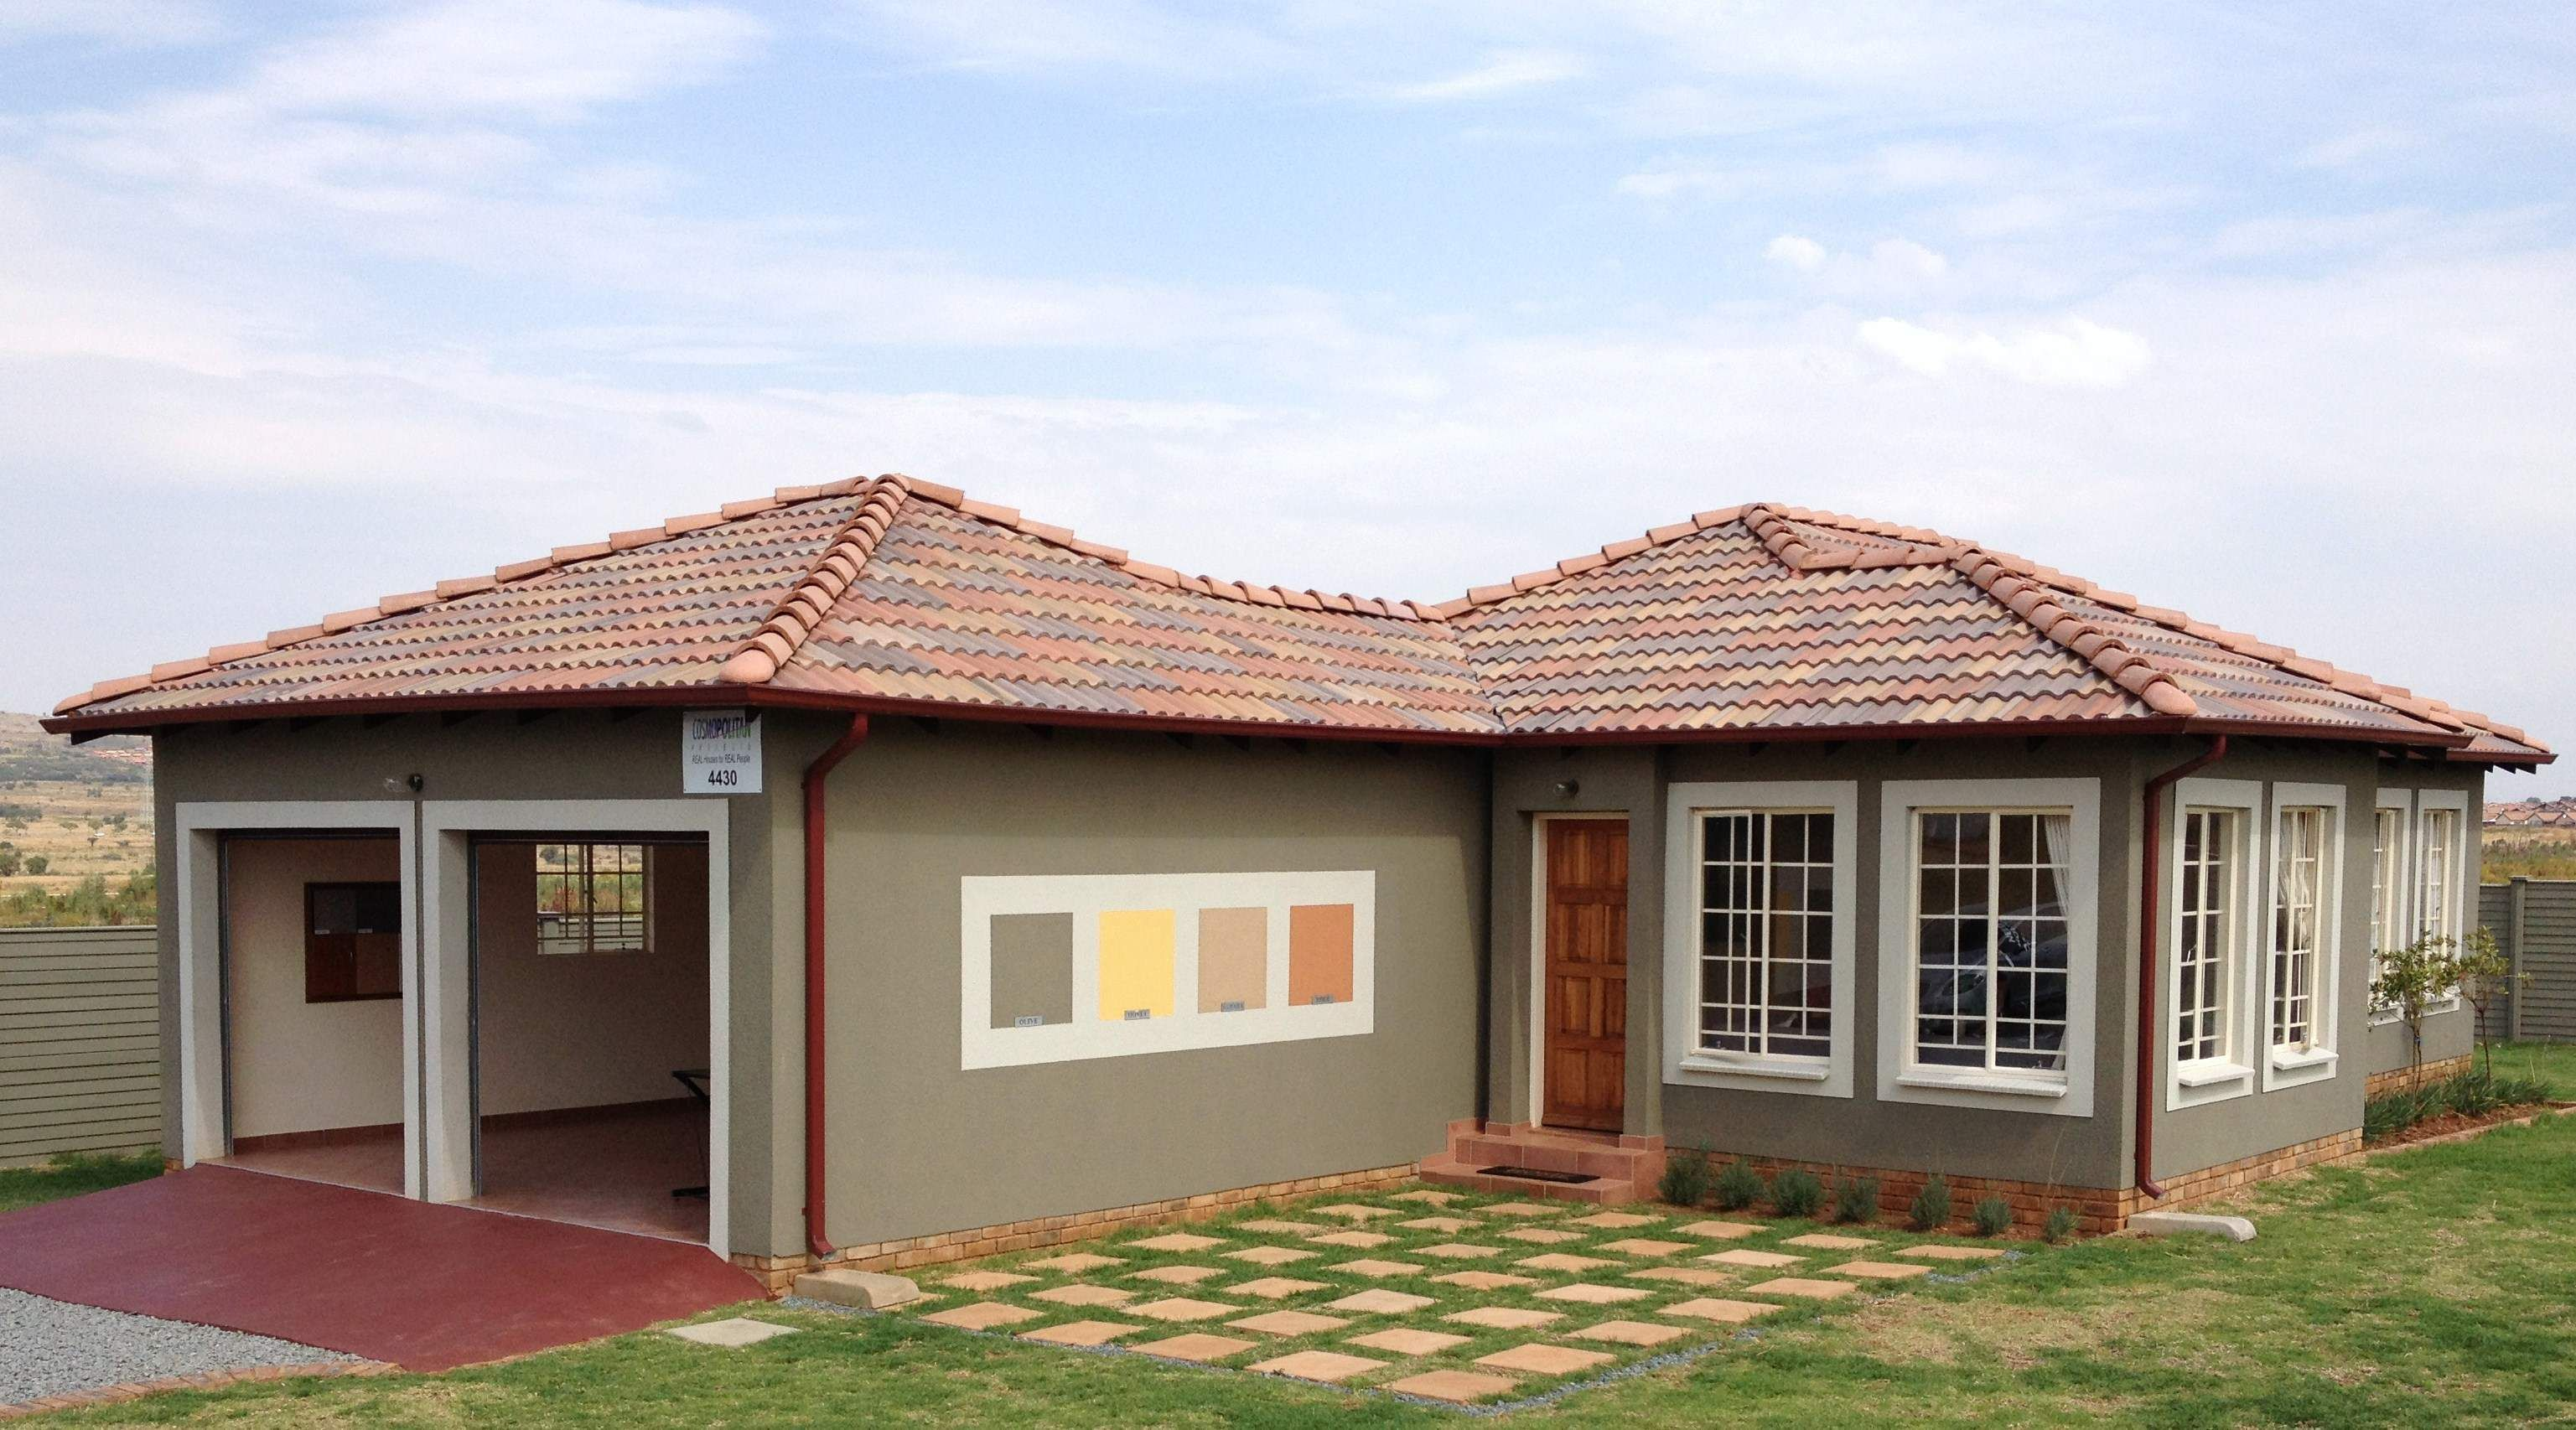 The tuscan house plans designs south africa modern tuscan for Free house plans and designs with cost to build